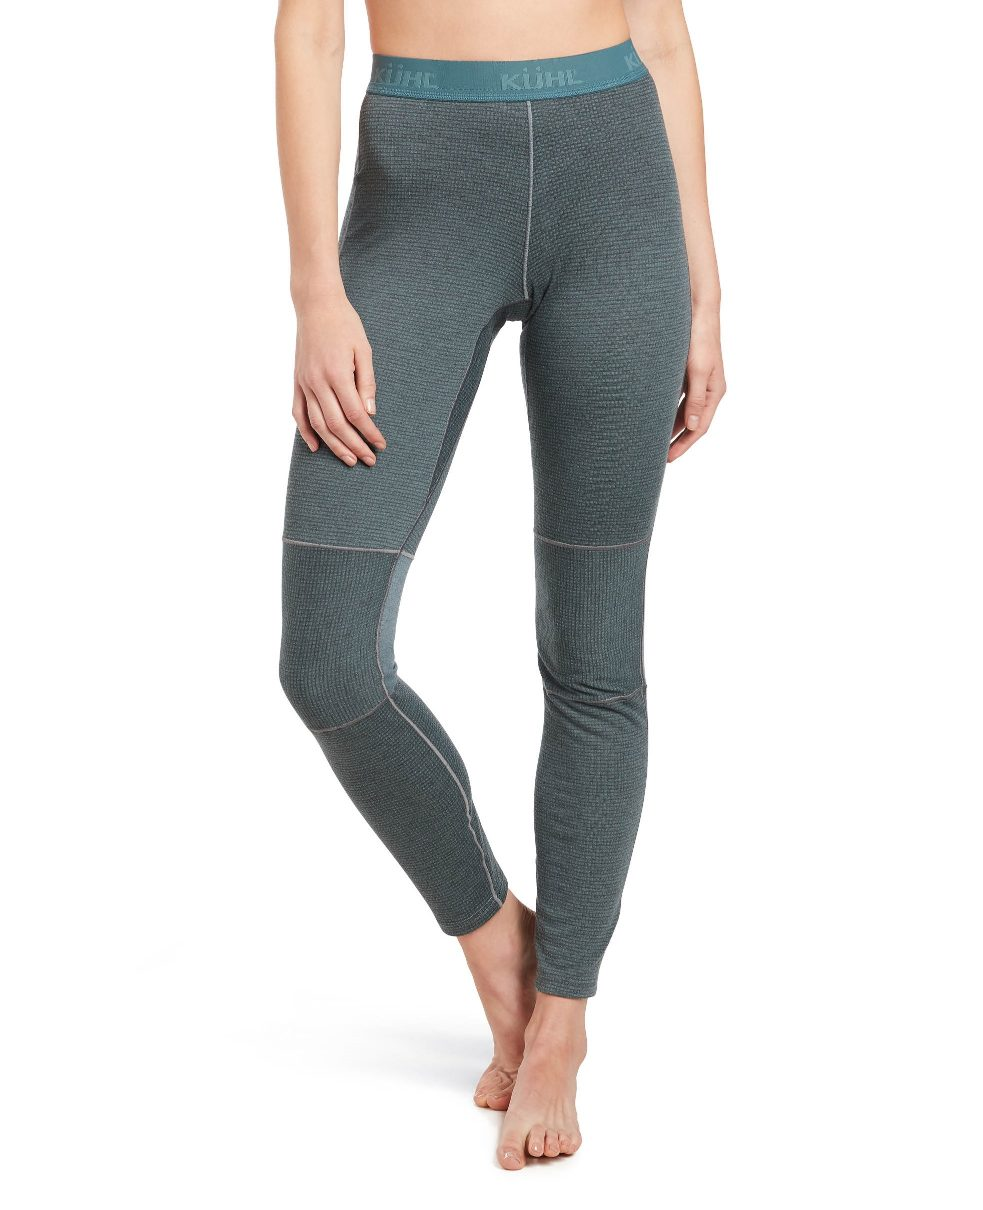 Kühl-Motiv Bottom - Women's